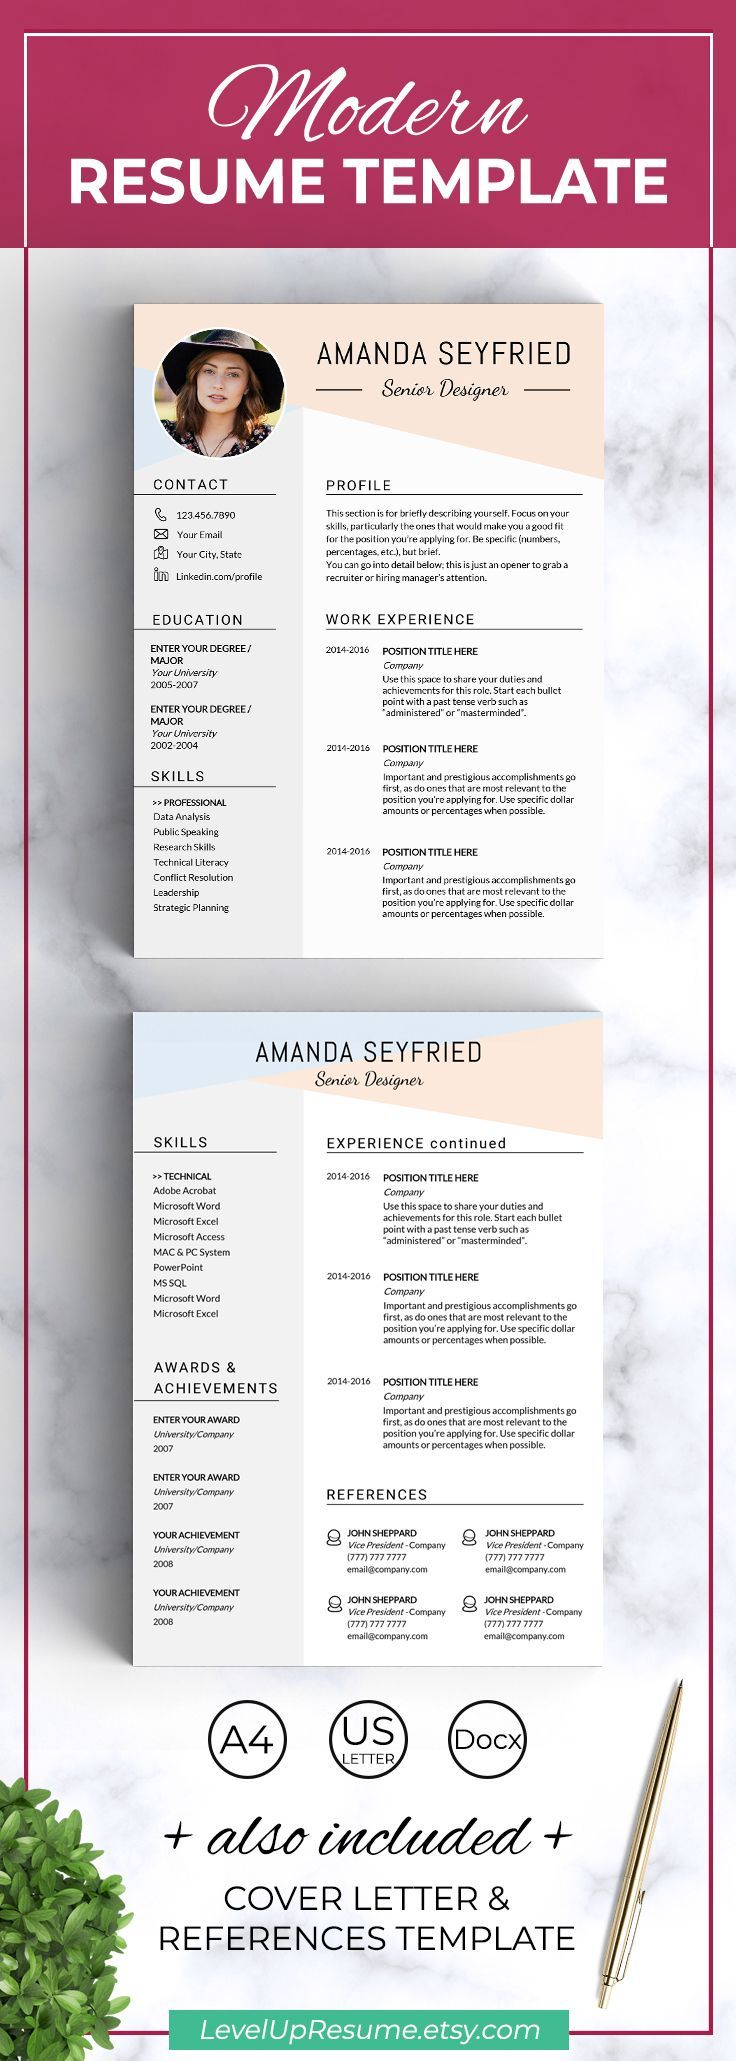 Check Out My New Creative Resume Template For Microsoft Word In A